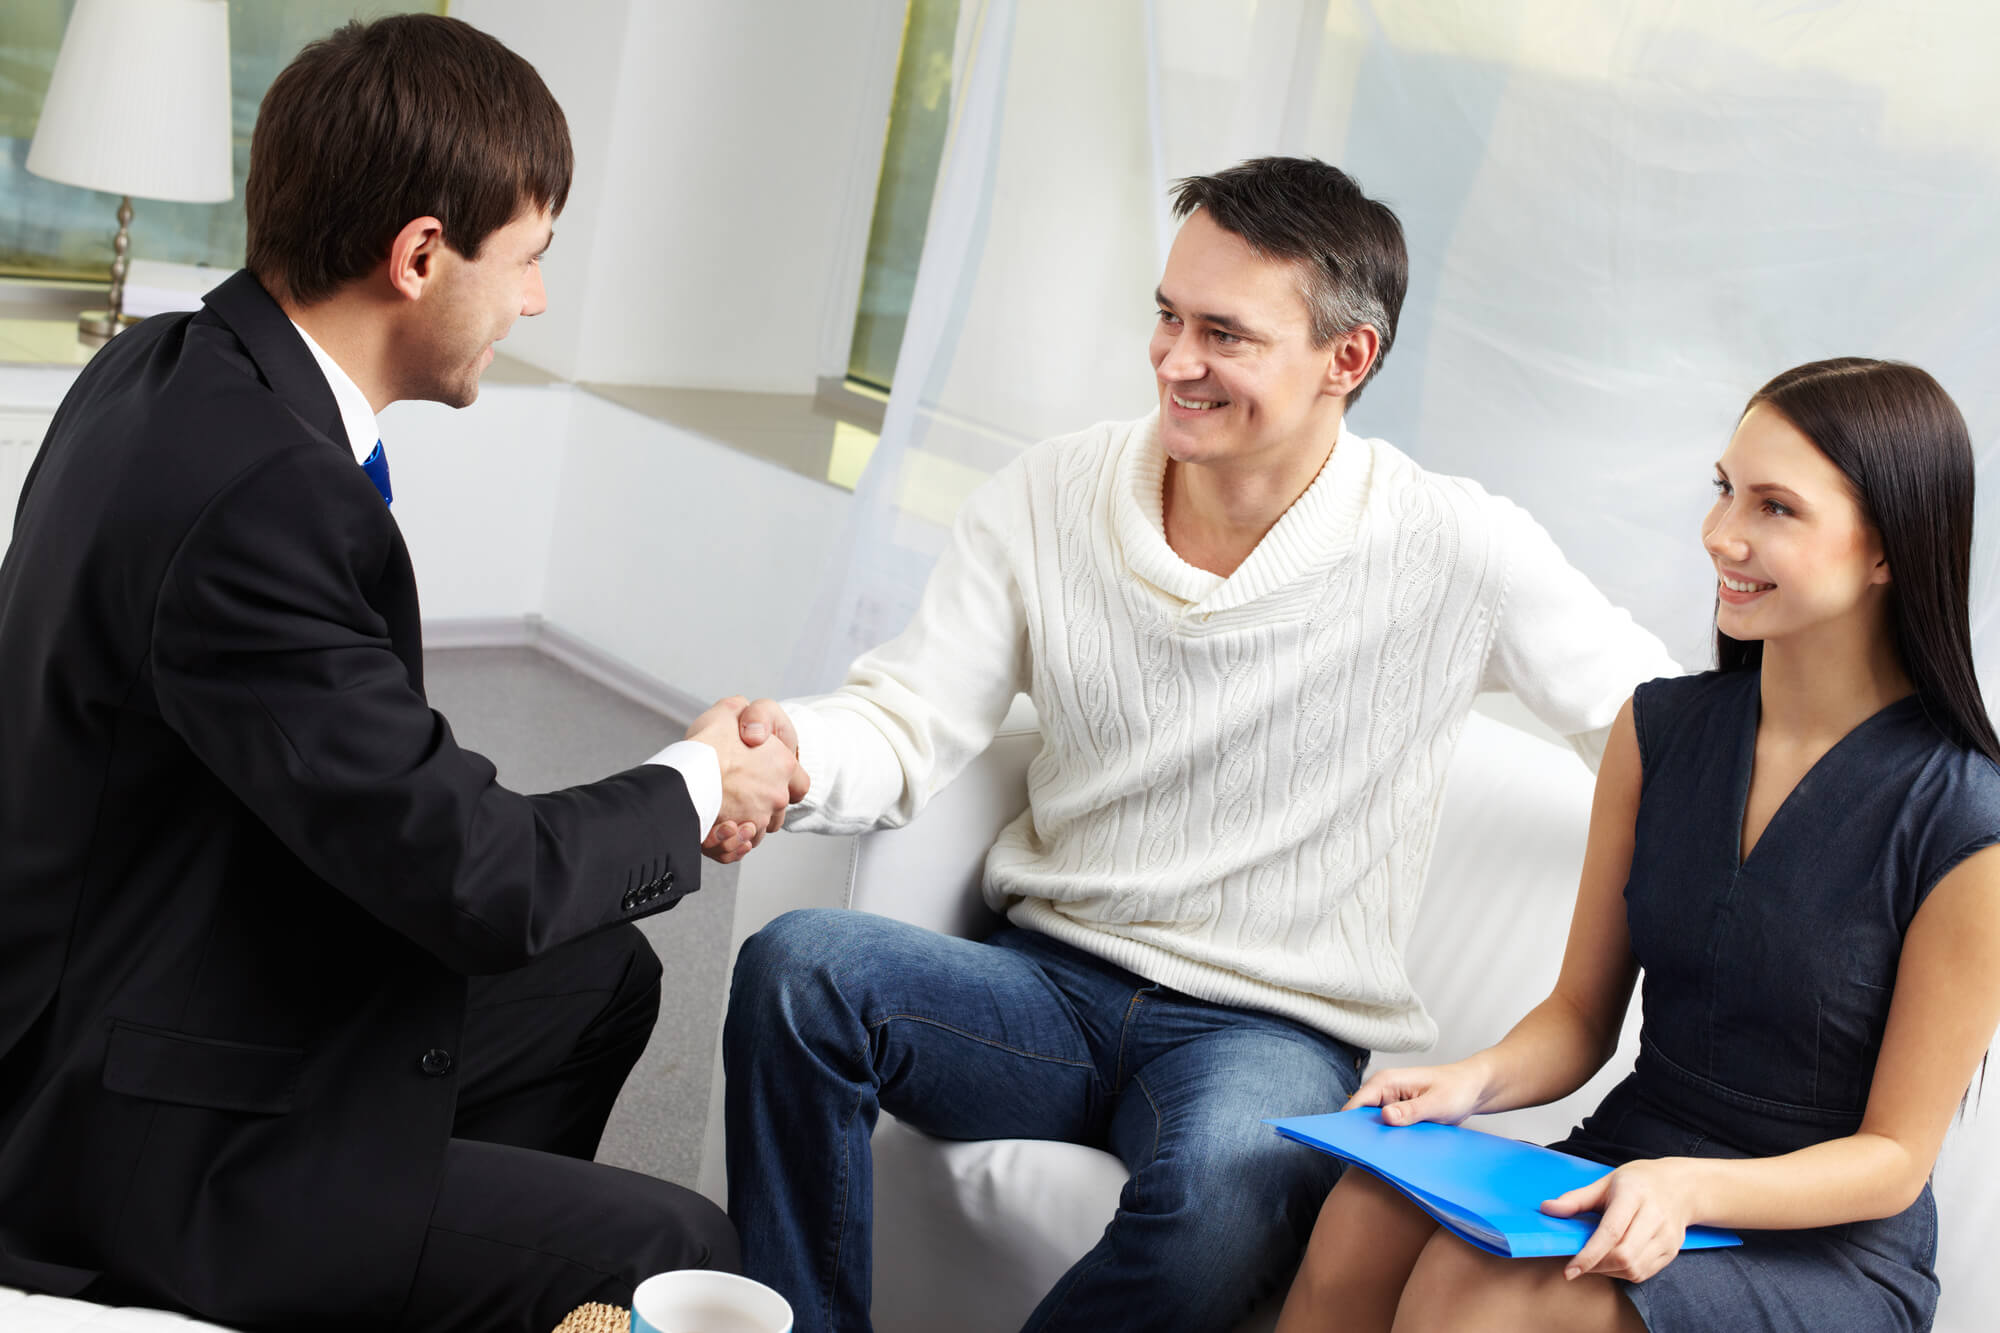 Where can I find Insurance Agencies For Sale New York City NY?